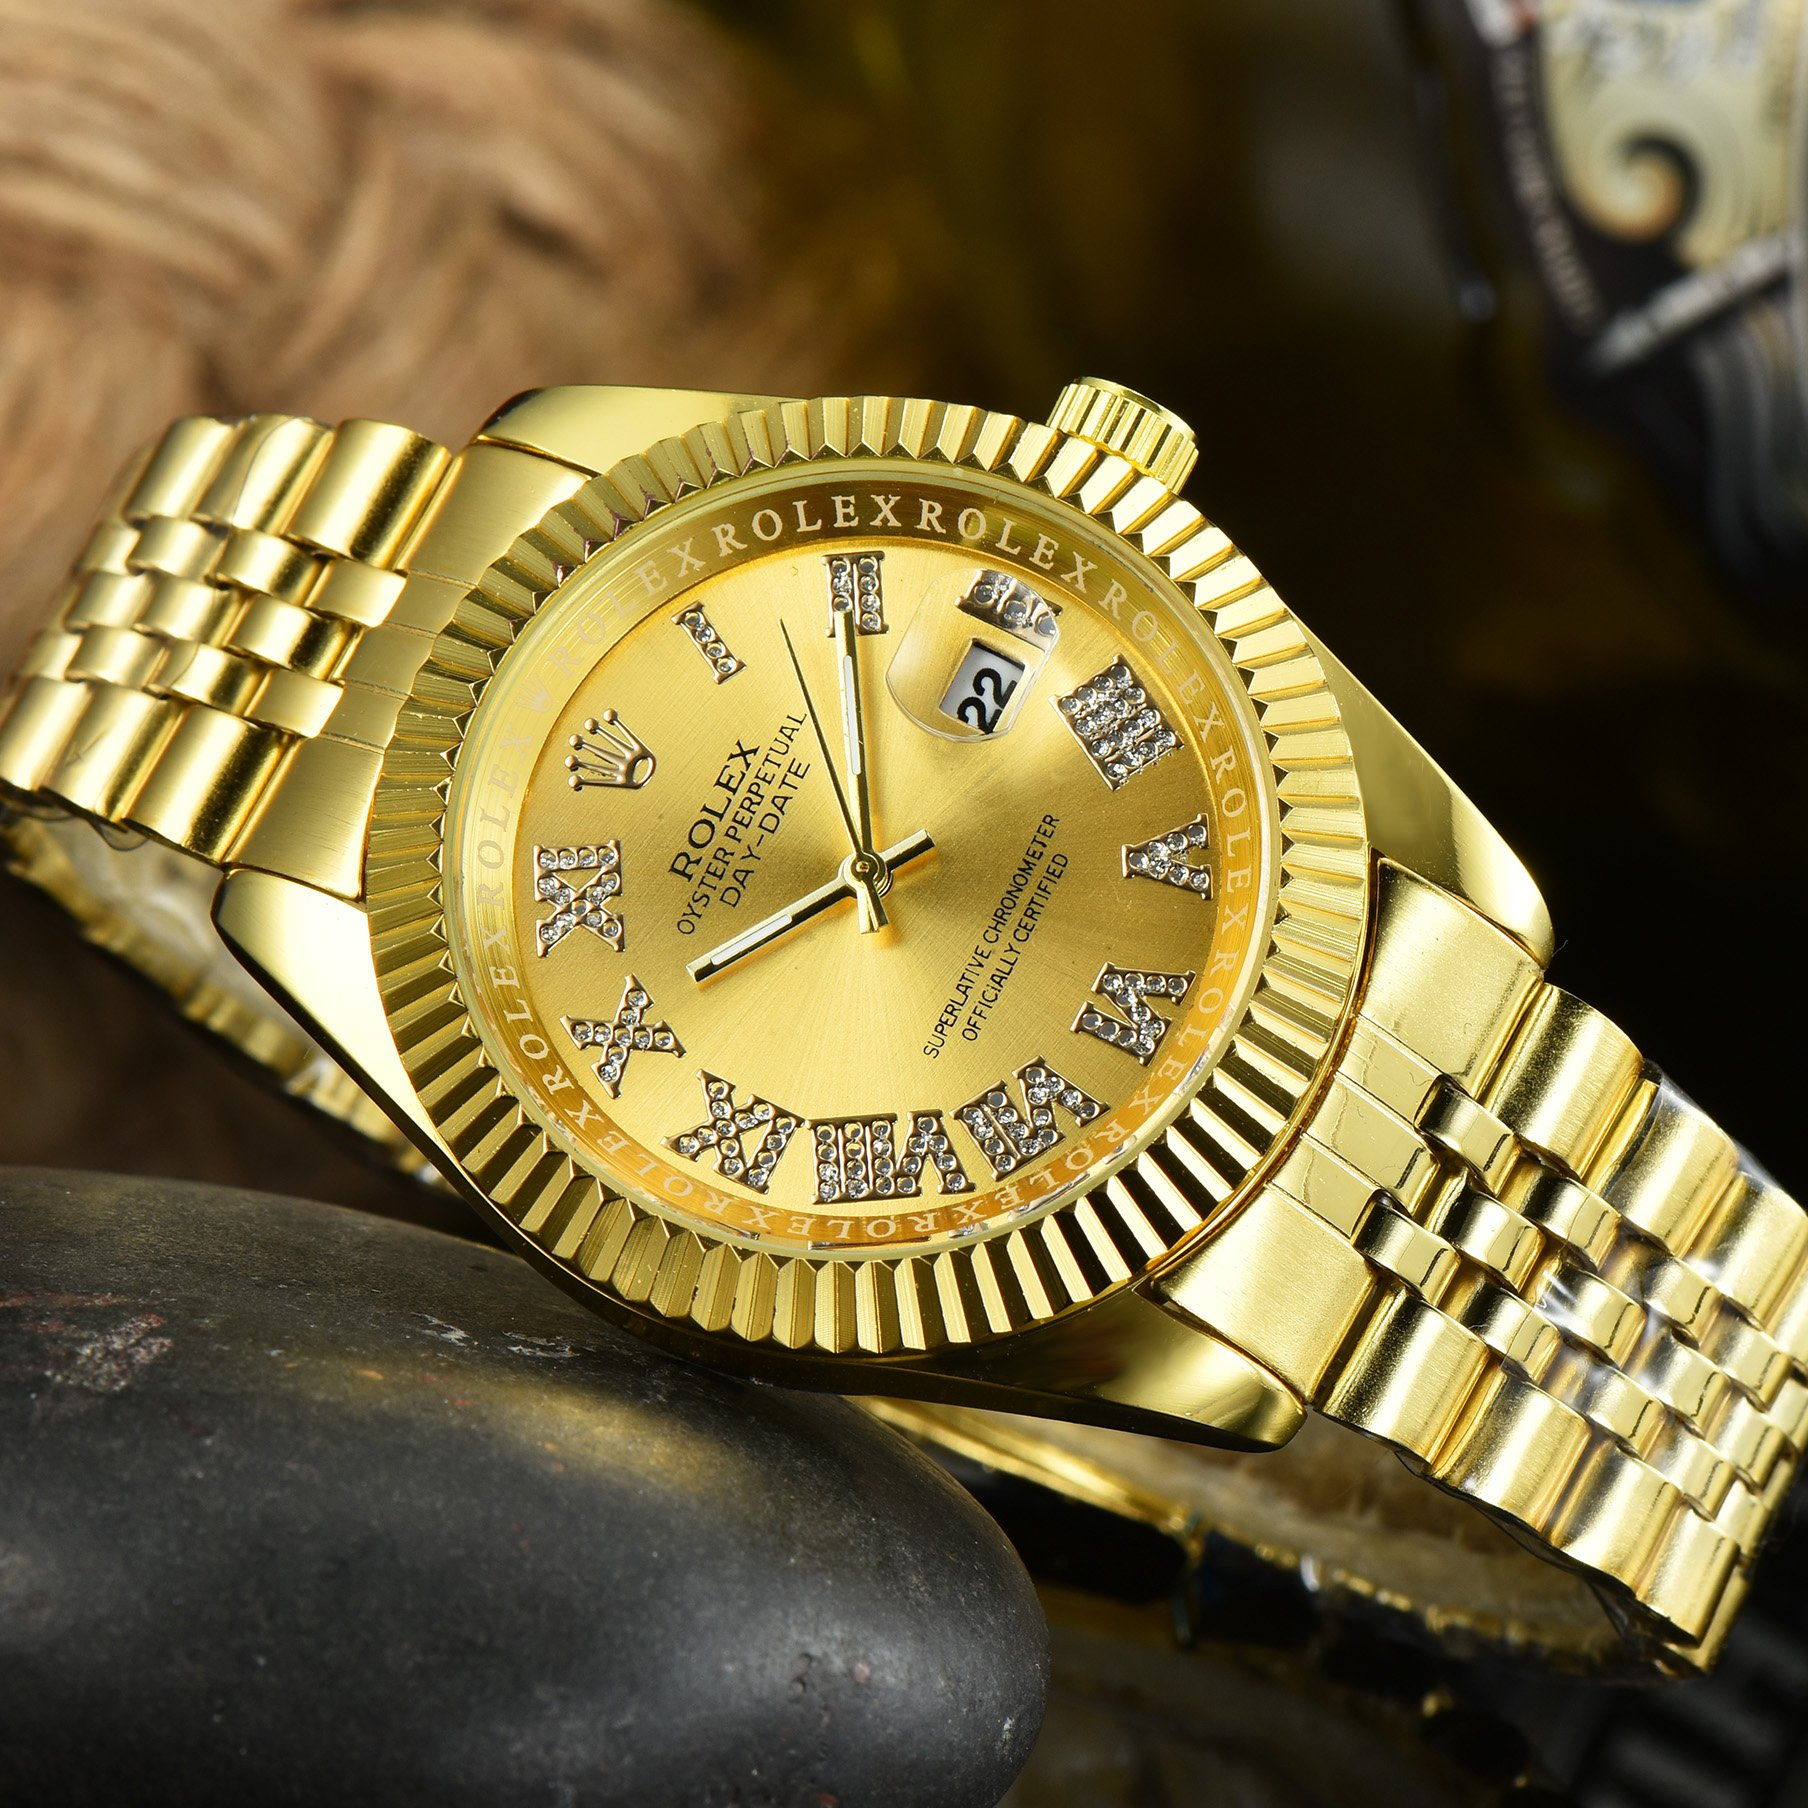 Image of Rolex luxury men's and women's casual business watches